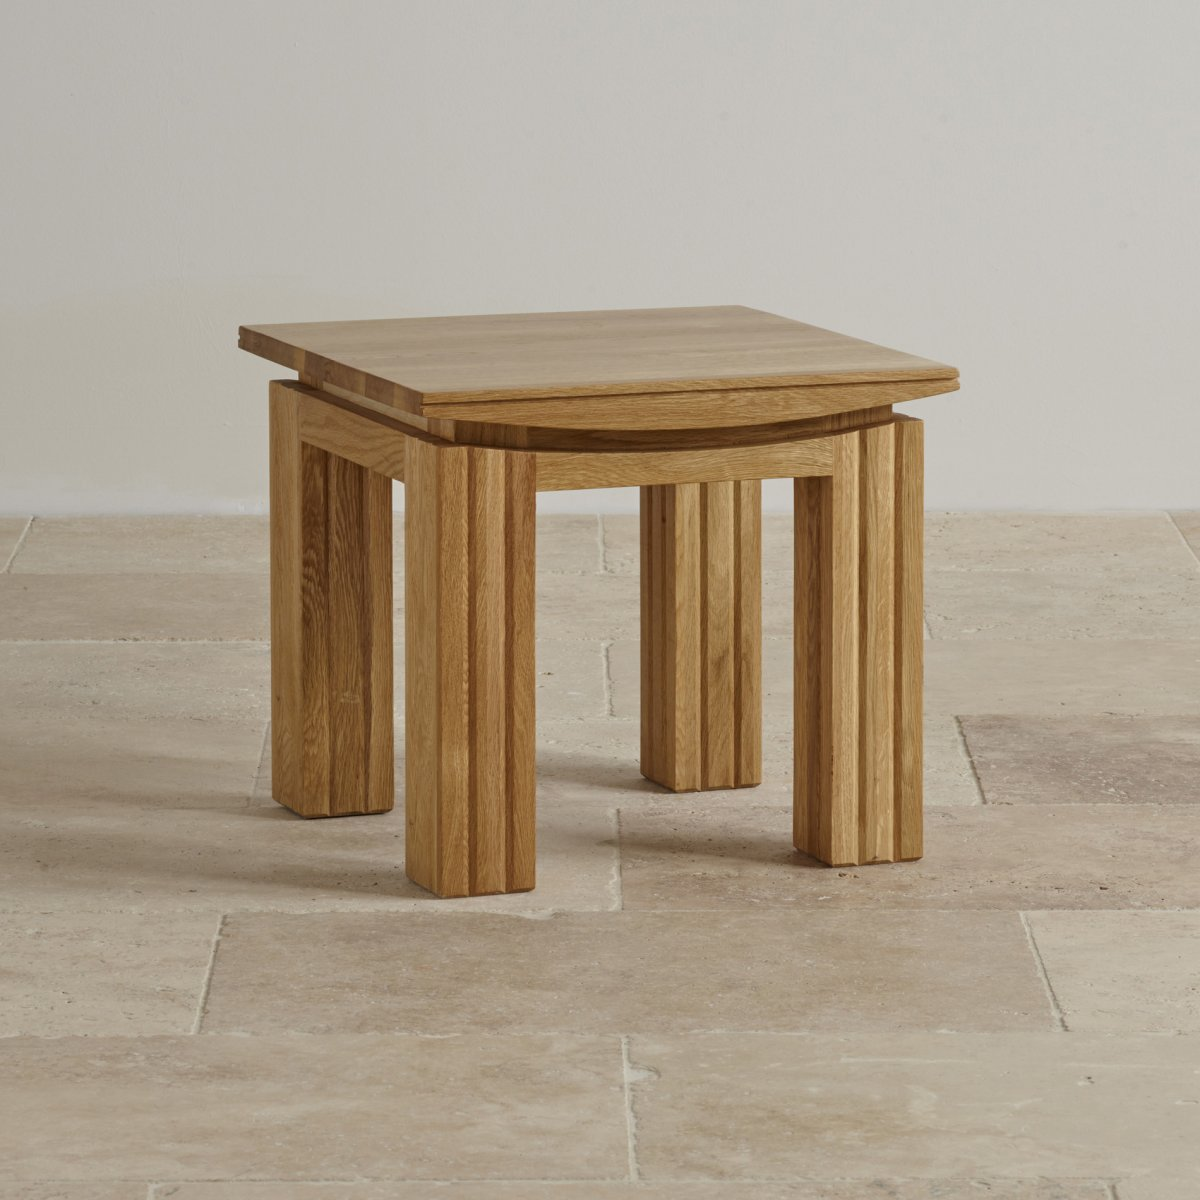 Oak Furniture Living Room Side Tables A Living Room Essential Oak Furniture Land